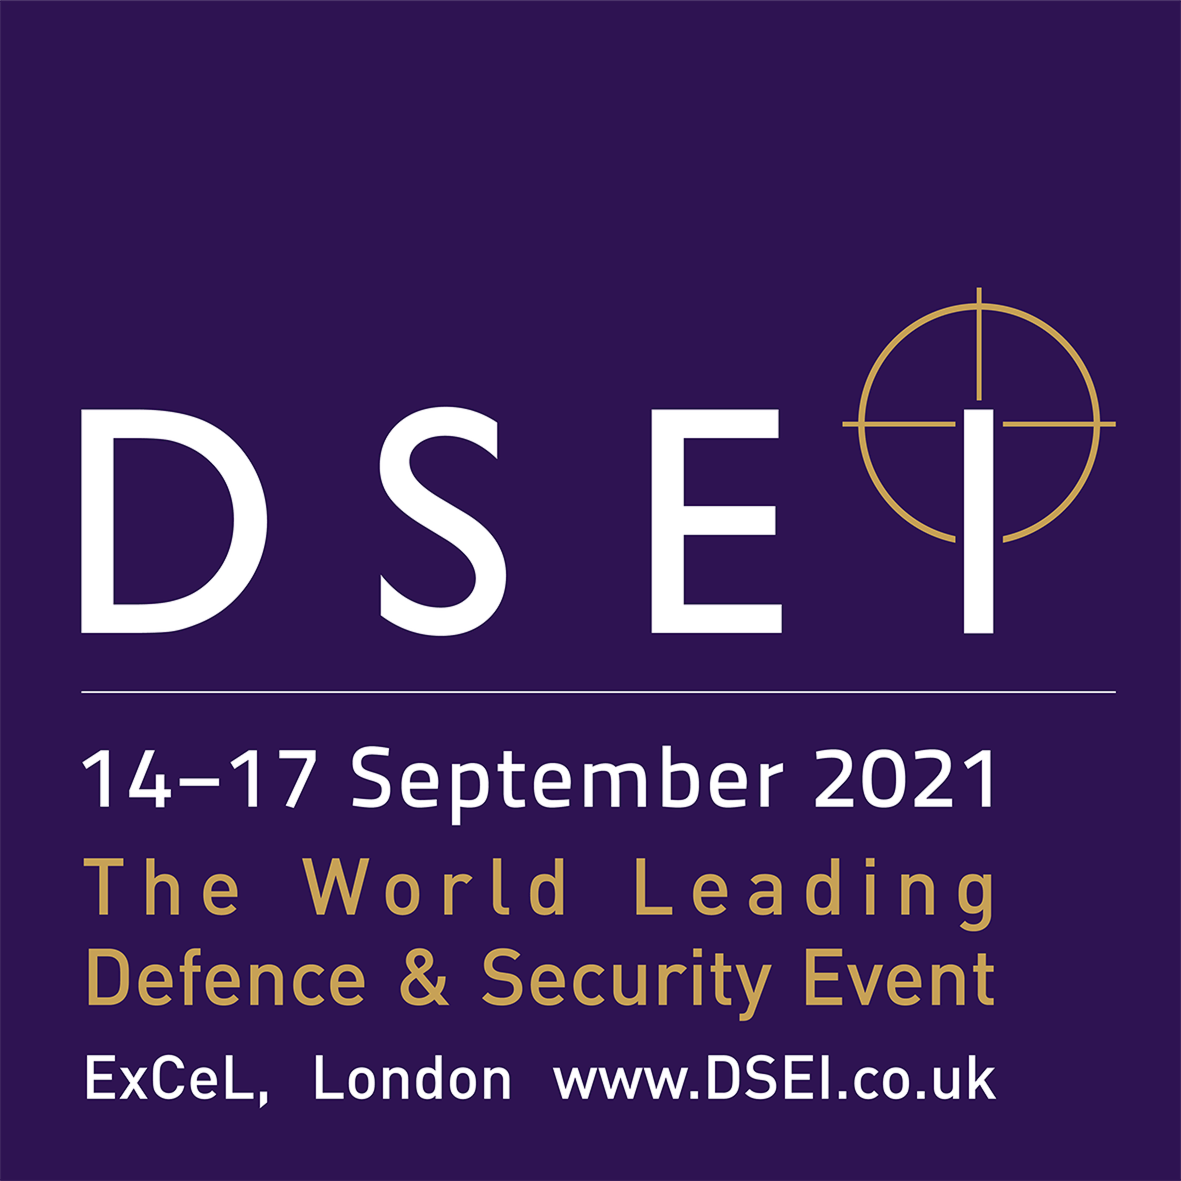 Clarion Defence & Security - DSEI 2021 - Powering Progress, Defining Your  Future